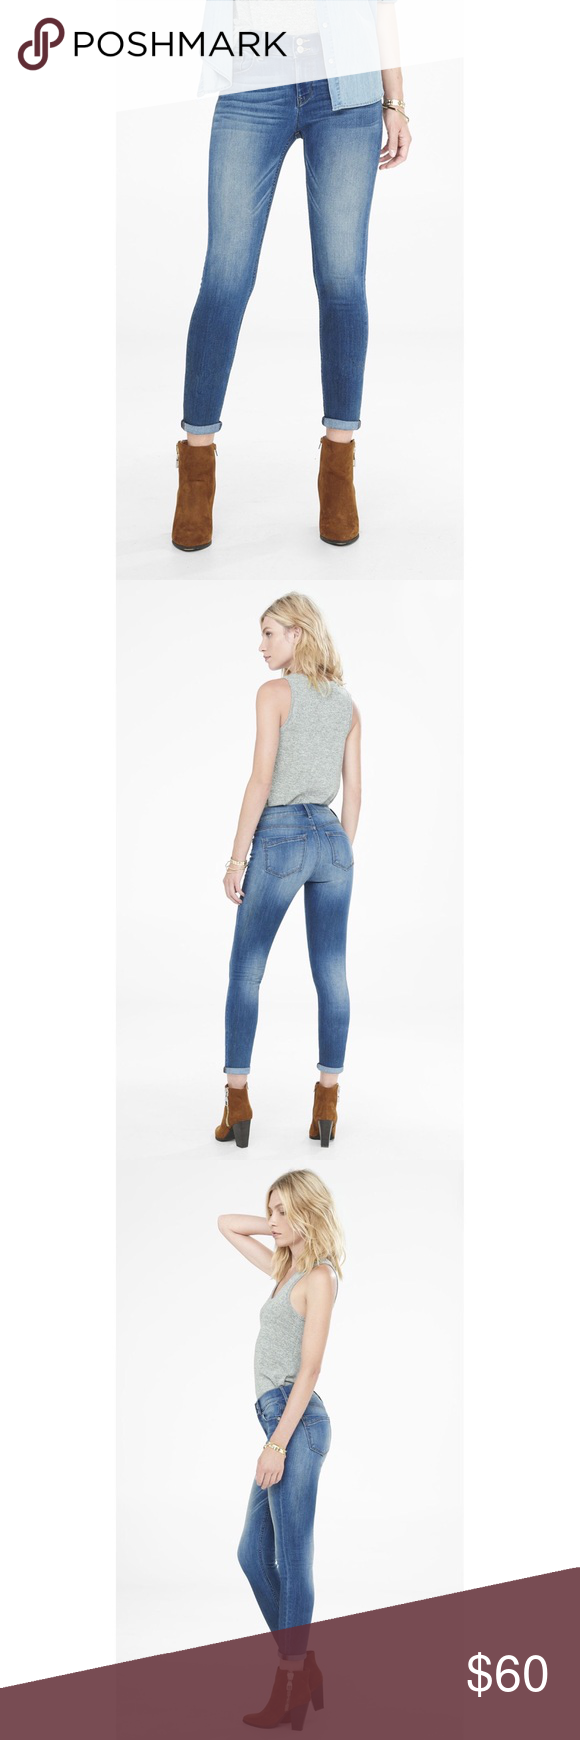 "Express mid rise cropped jeans 👖 Express mid rise cropped jeans features a double button fly and cuffed ankles. Inseam 29"". True to size. Express Jeans Ankle & Cropped"